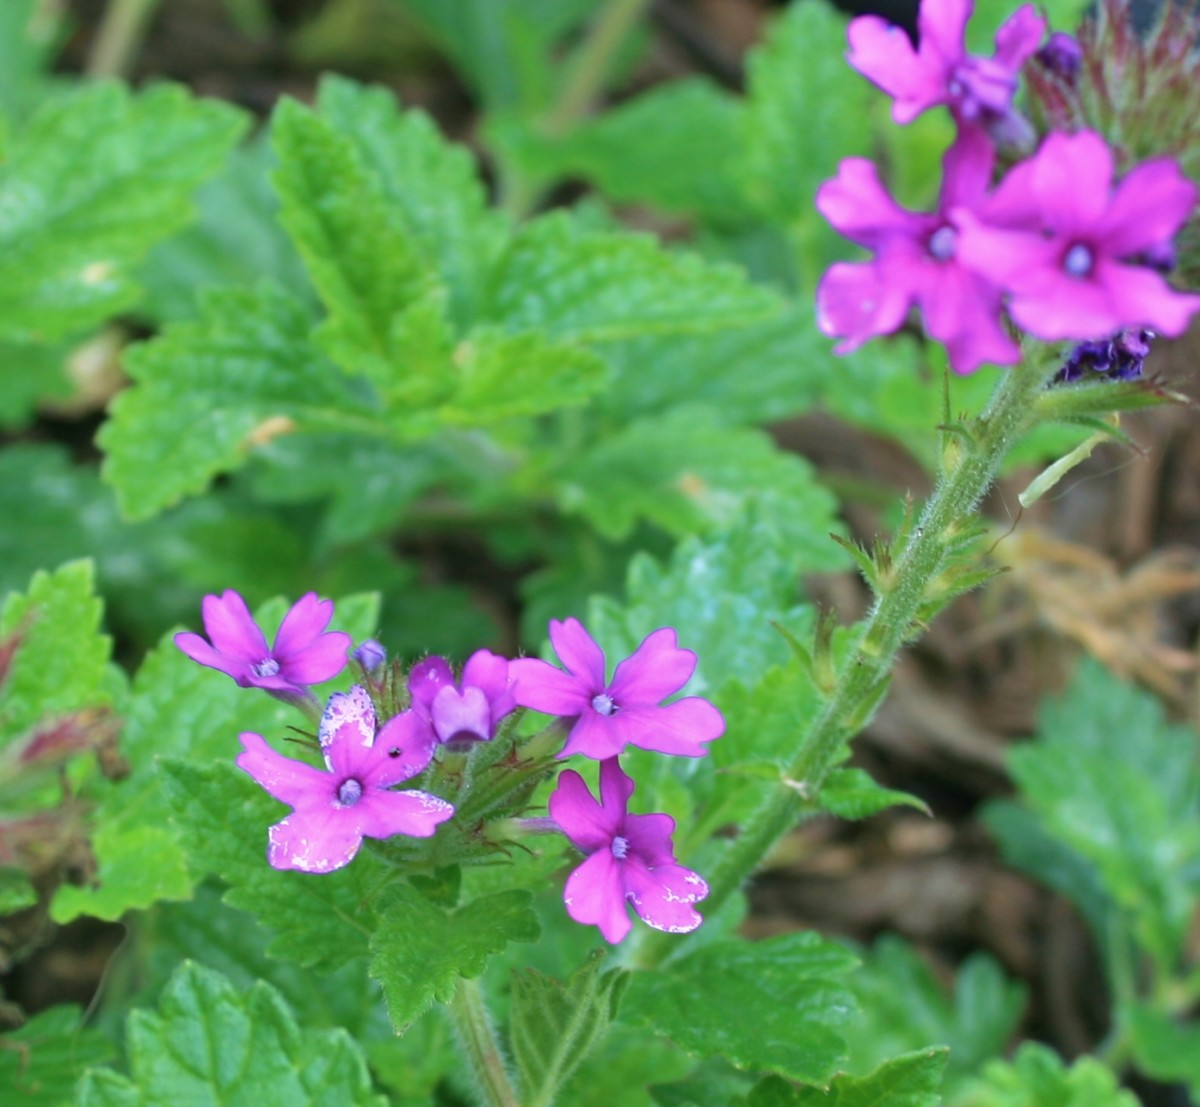 Homestead purple verbena is a good hardy blue flower substitute in a full-sun patriotic flower bed or flower pot.